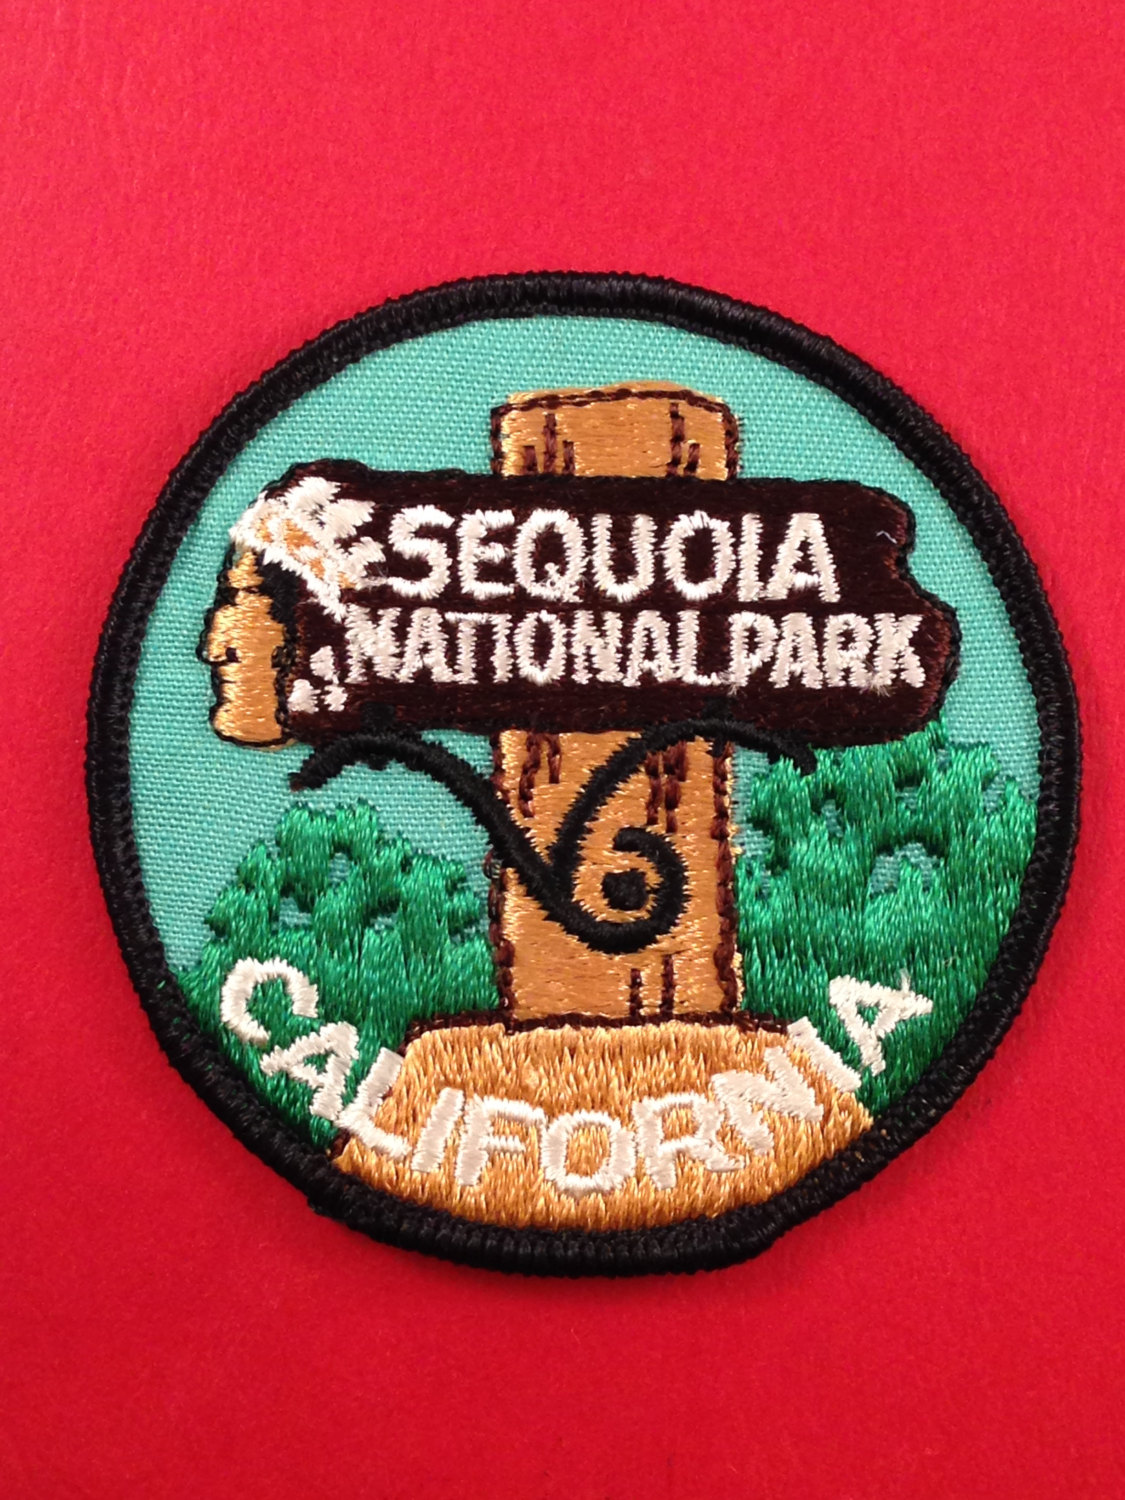 Sequoia National Park clipart #8, Download drawings